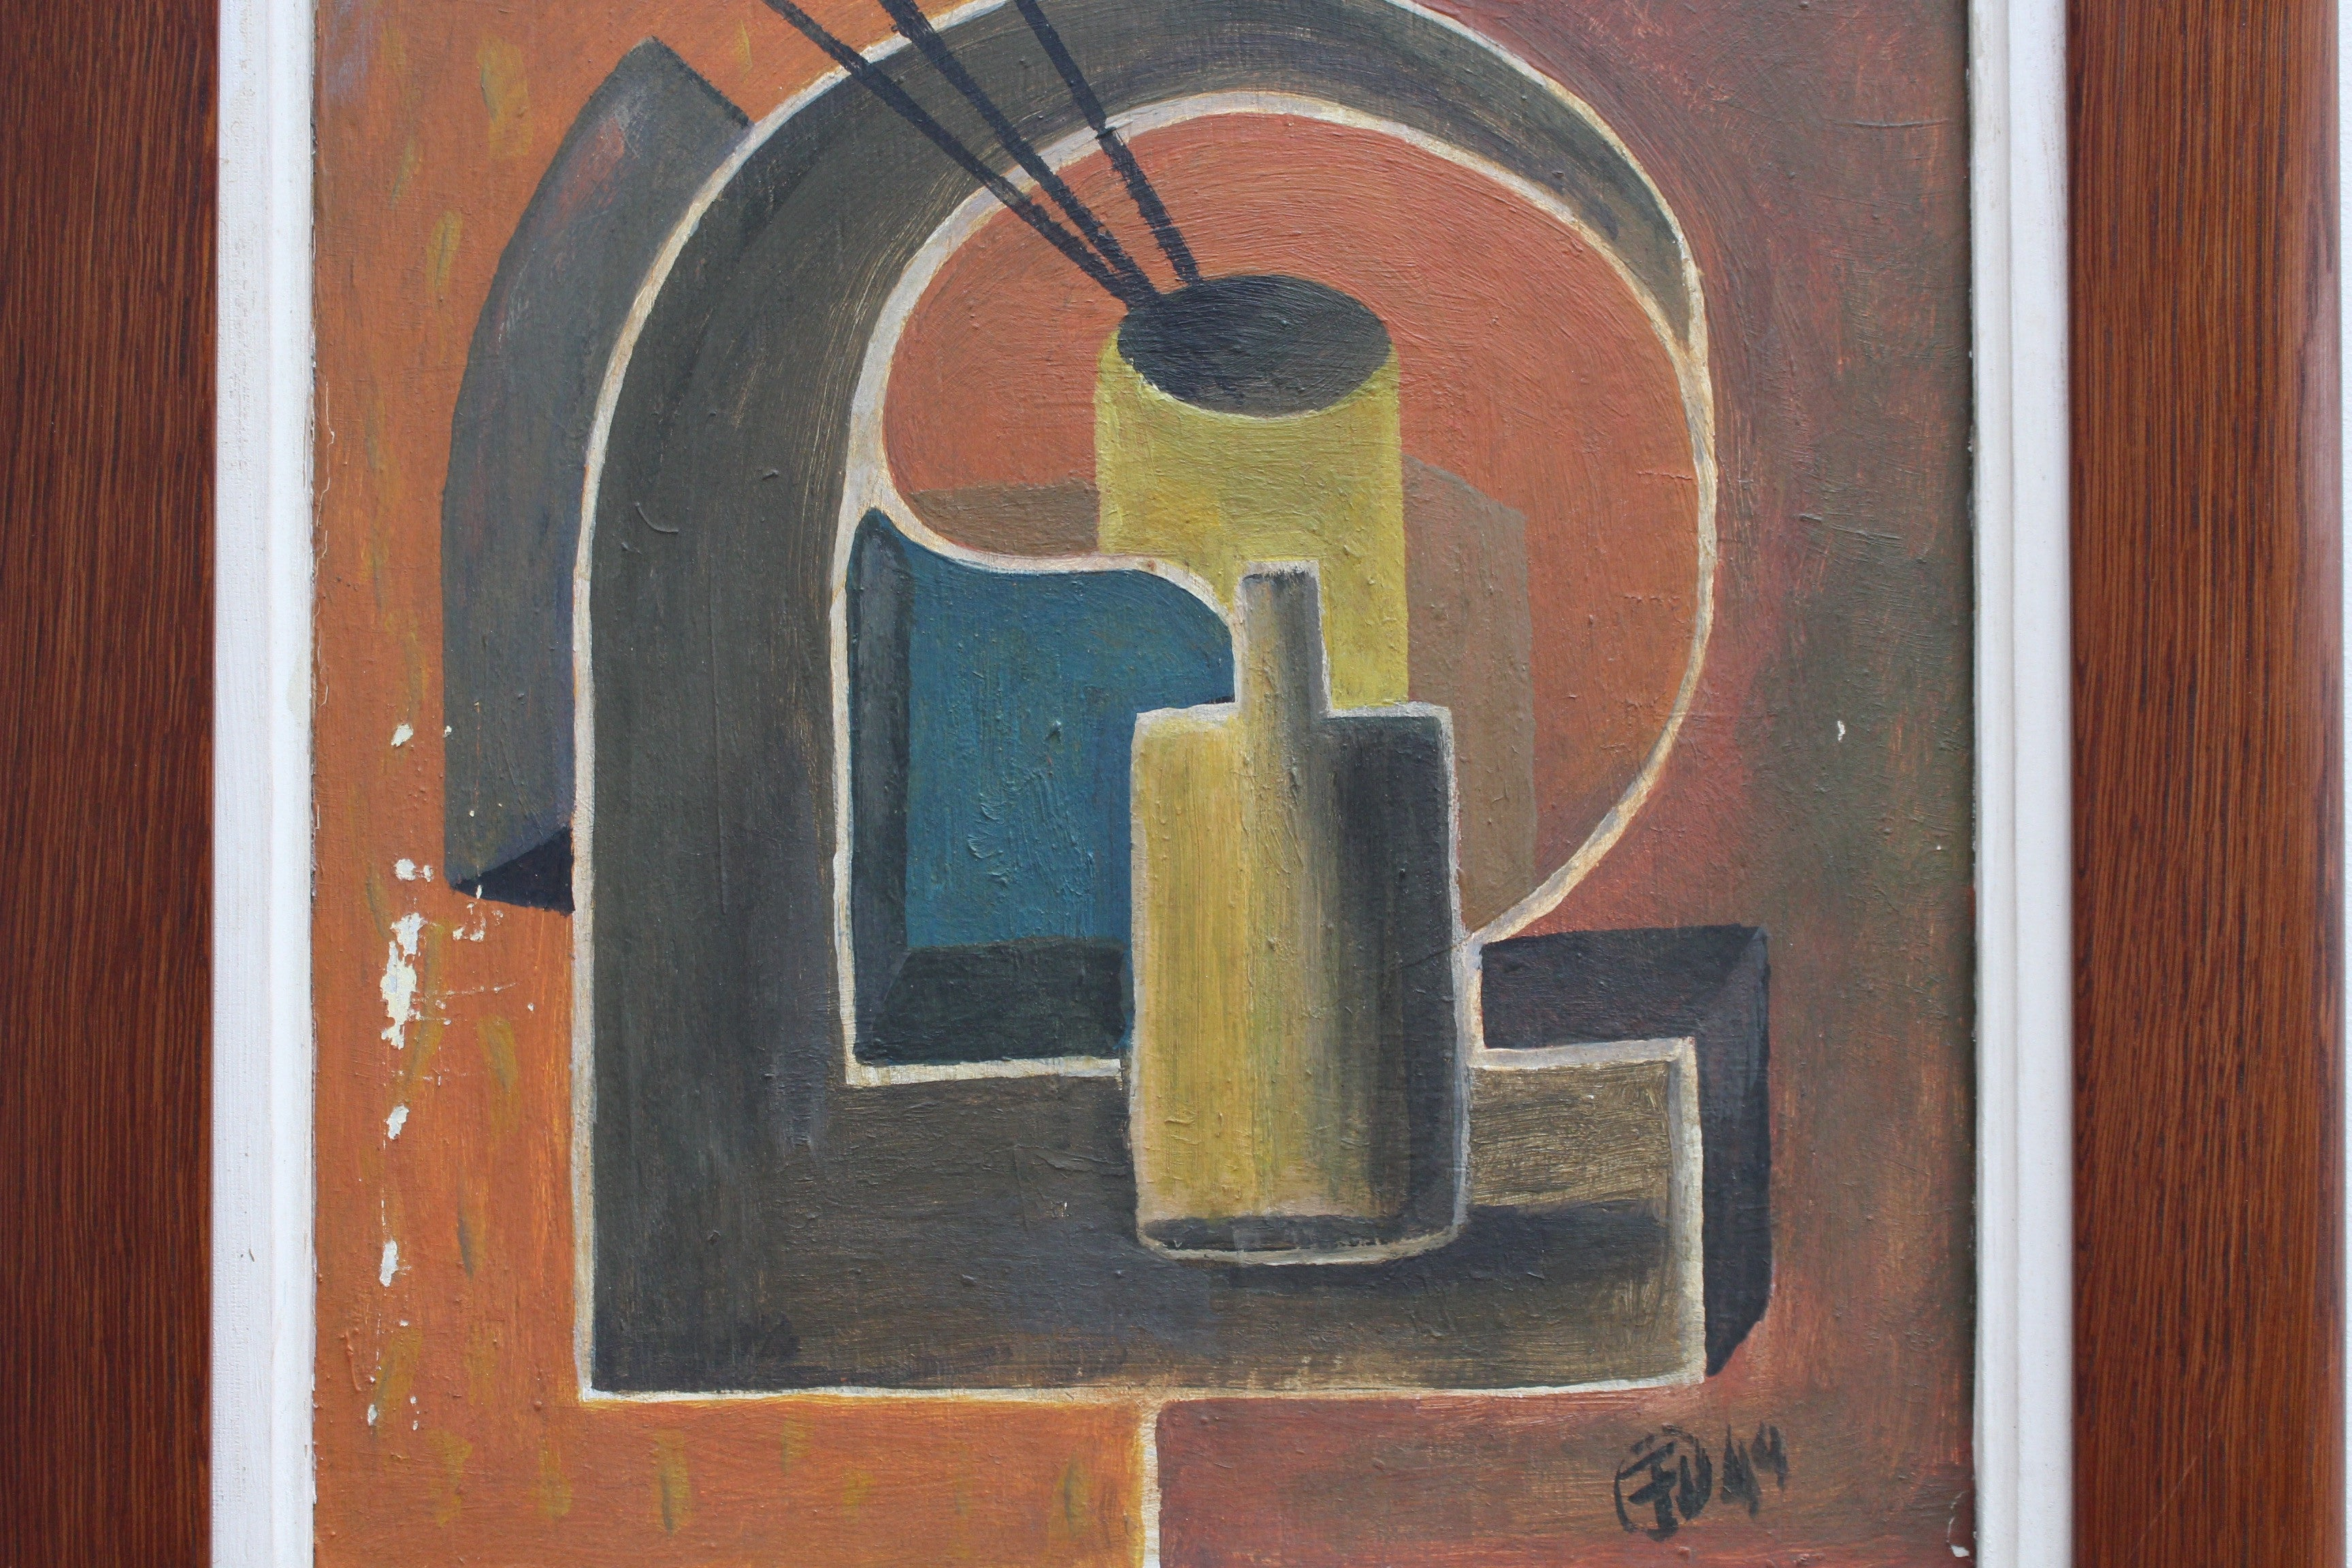 'Artist's Brushes and Bottle' by Unknown Artist with Initials F.U. (1949)